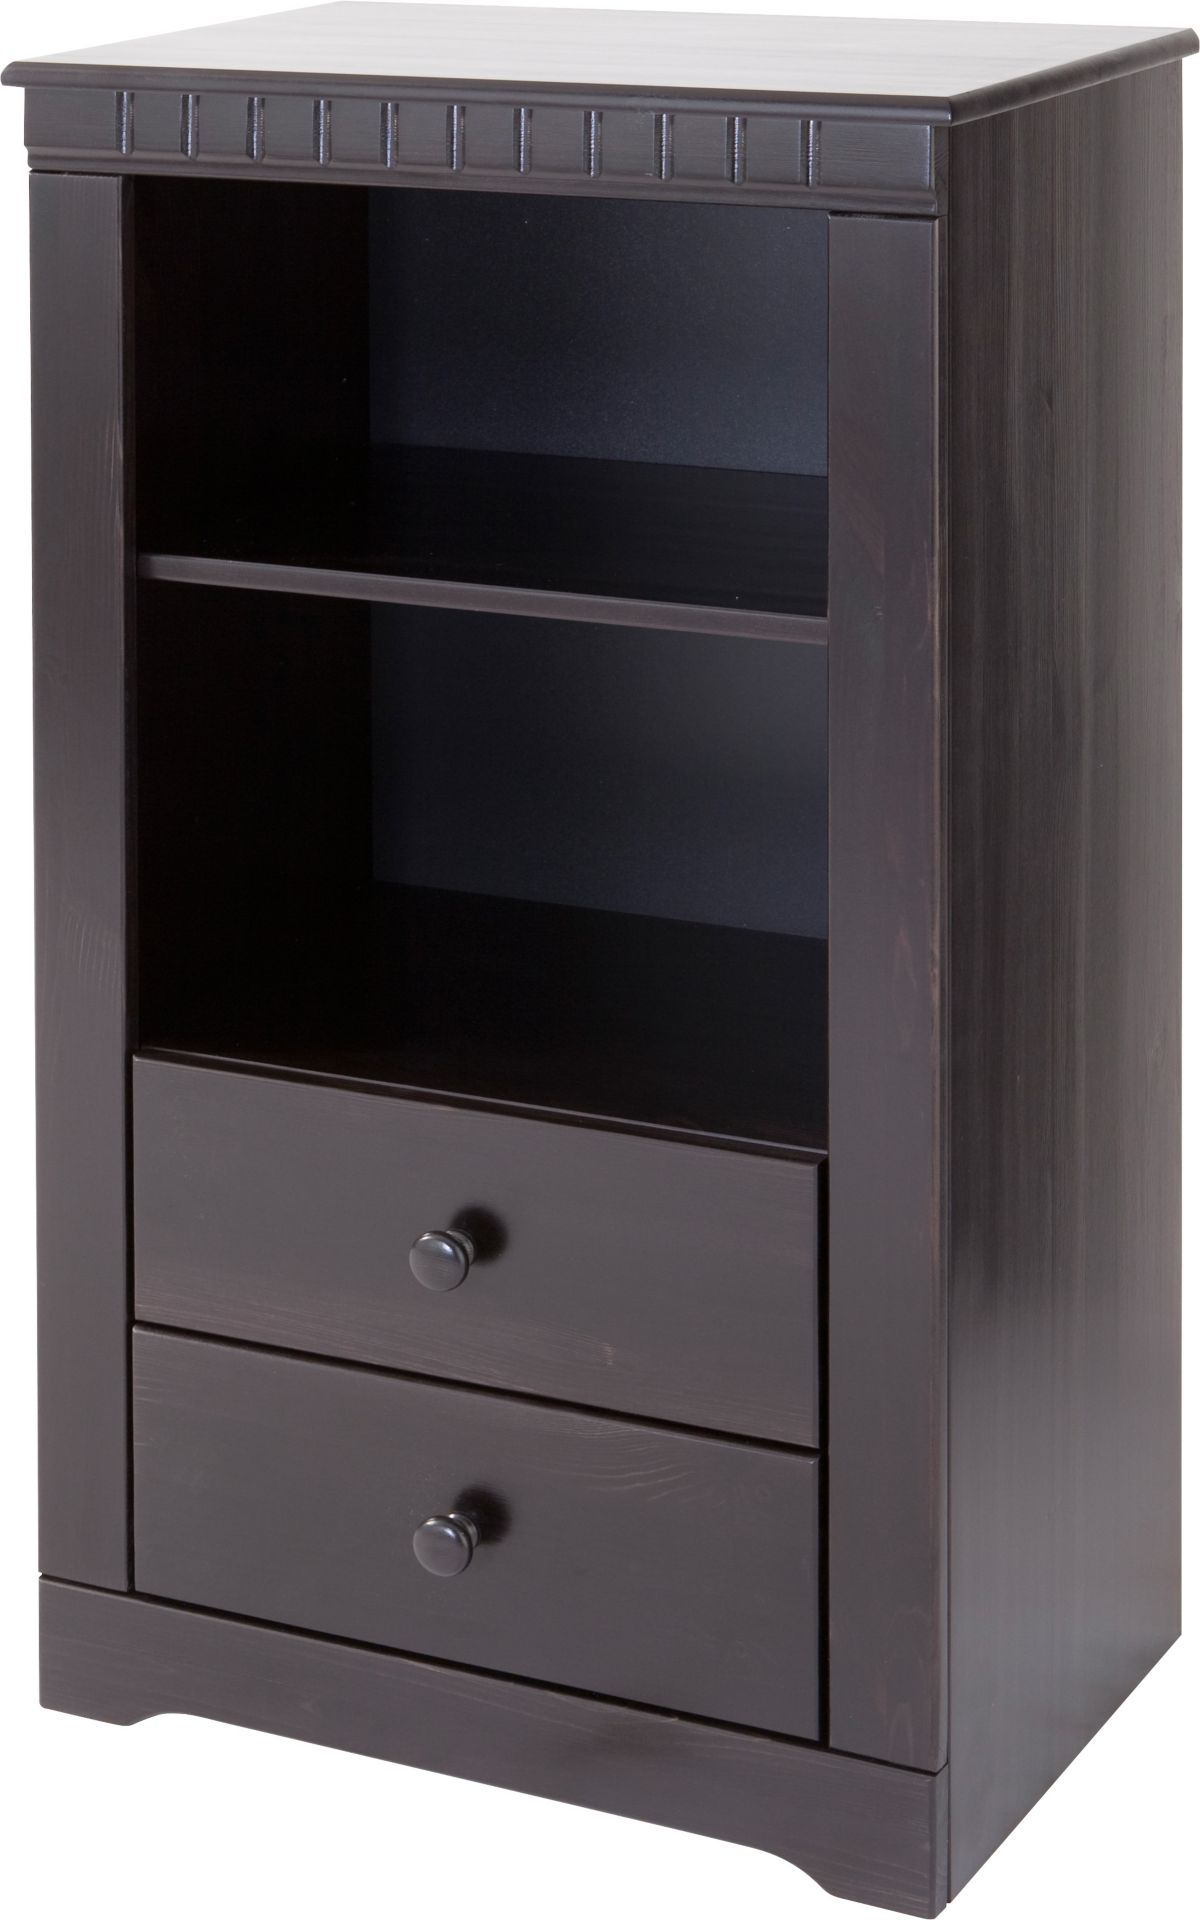 moebel moebel von a z regale z b standregal breite 80 cm. Black Bedroom Furniture Sets. Home Design Ideas